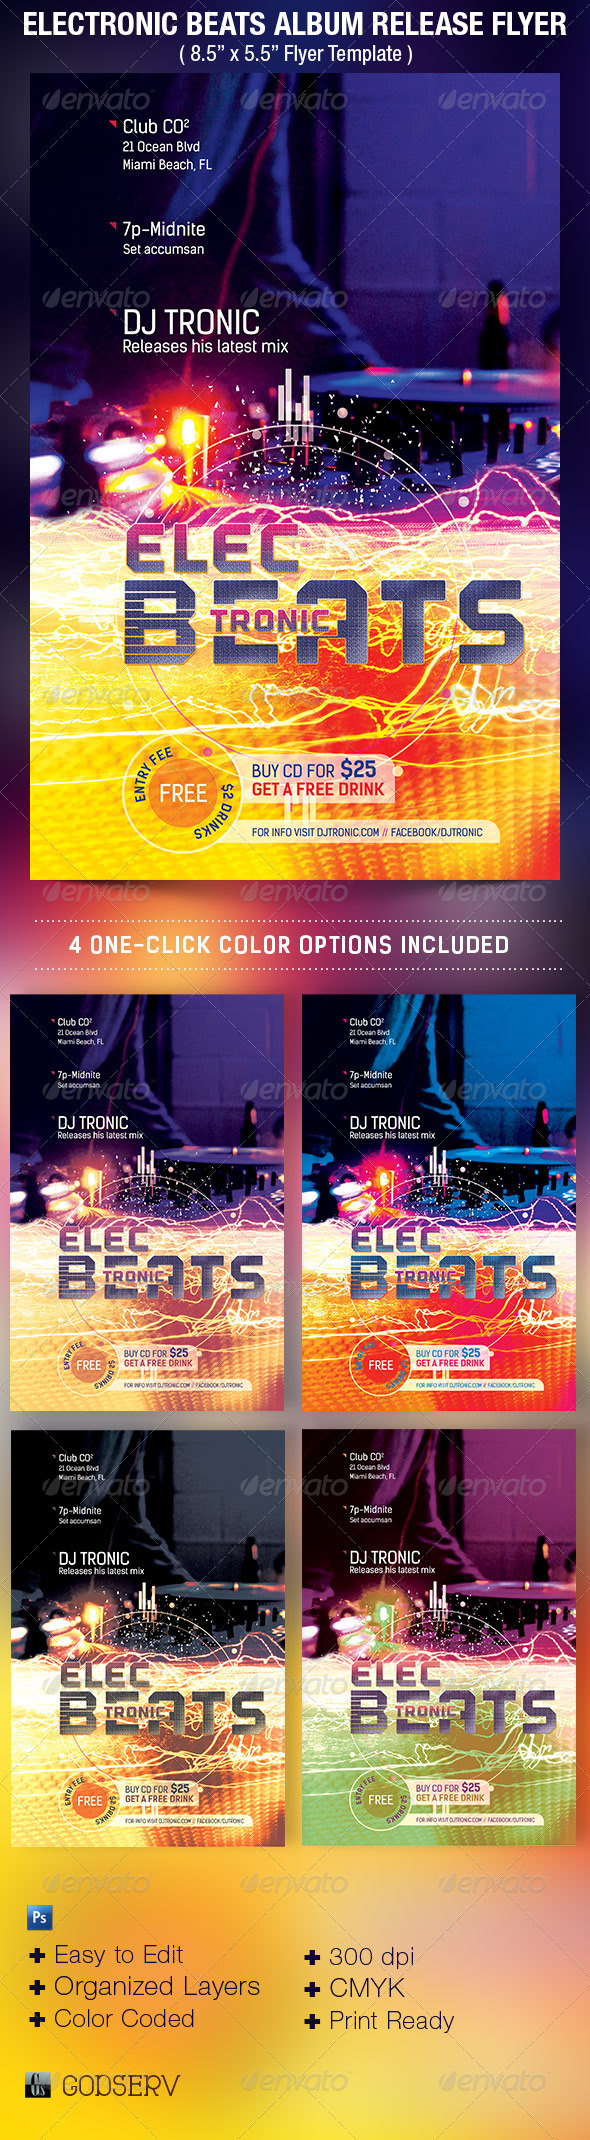 Electronic Beats Album Release Flyer Template - Events Flyers